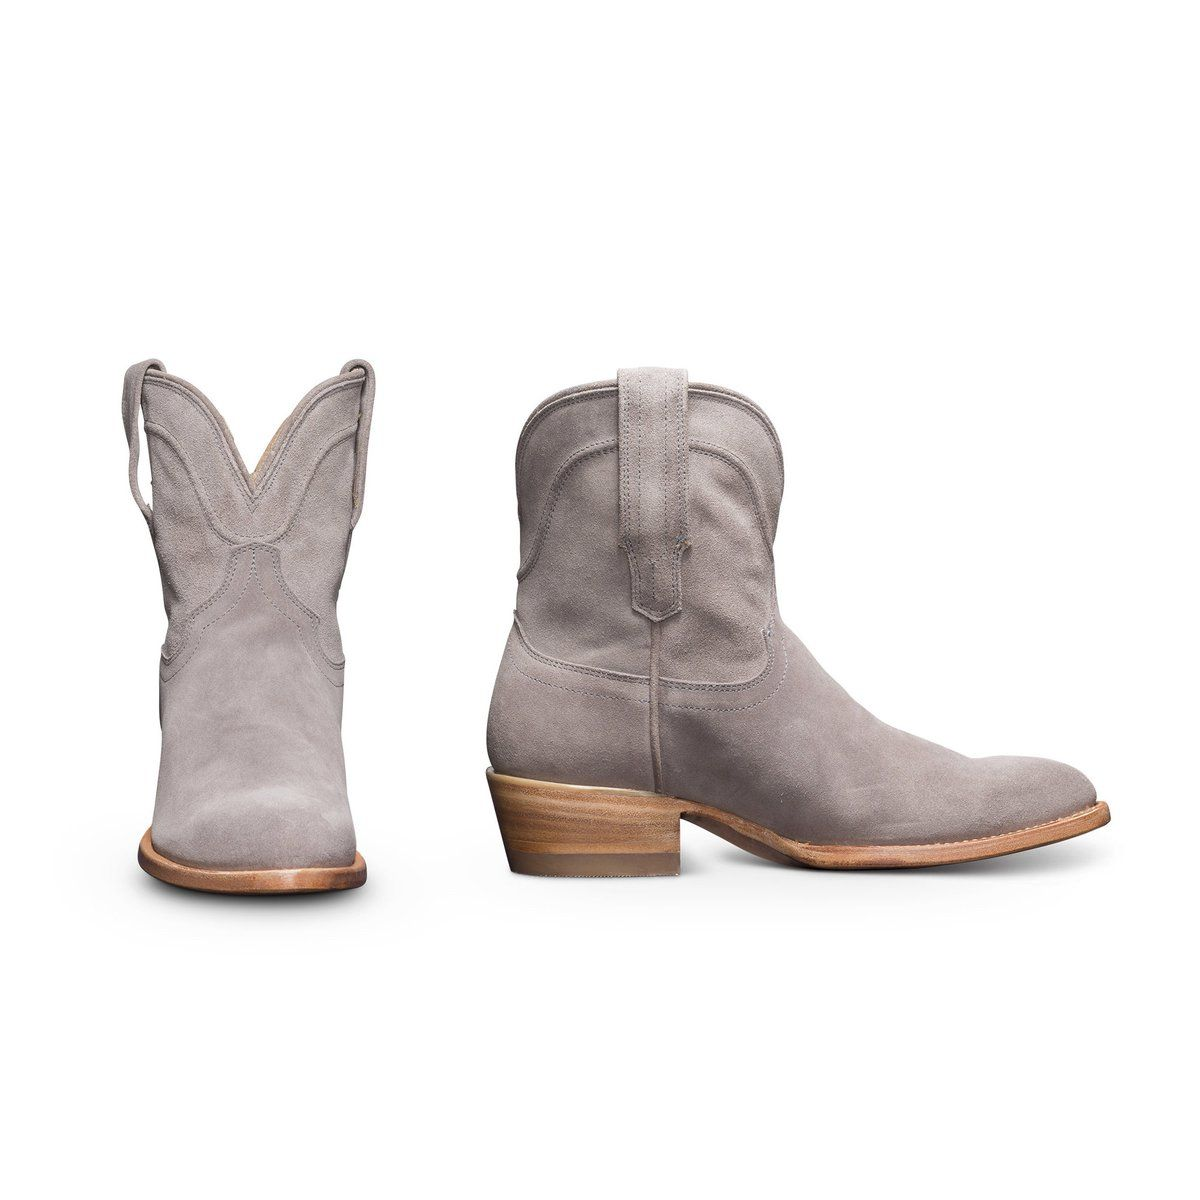 91e787560e7 Women's Waterproof Suede Booties - Western Ankle Cowboy Boots   The ...